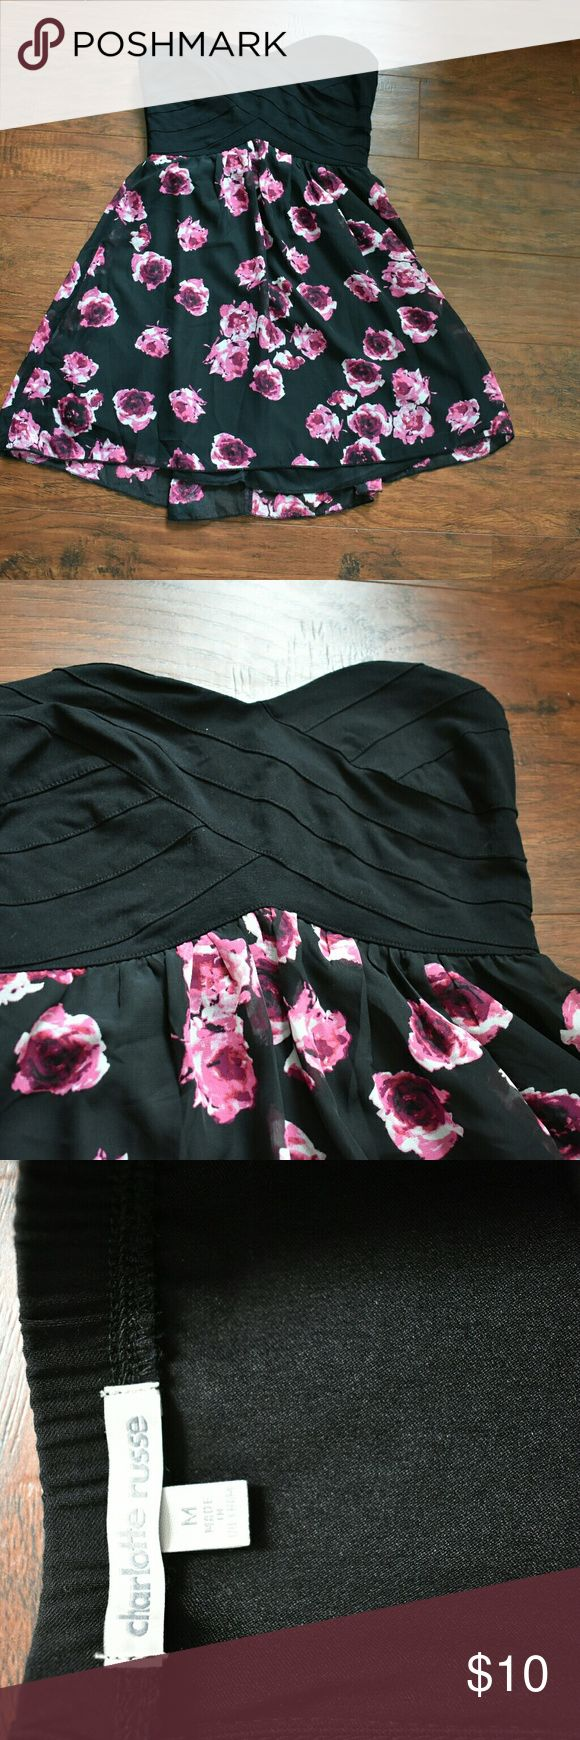 Dress Size M. However fits more like a small. Charlotte ruse dress. Blk & pink floral design. Charlotte Russe Dresses Mini